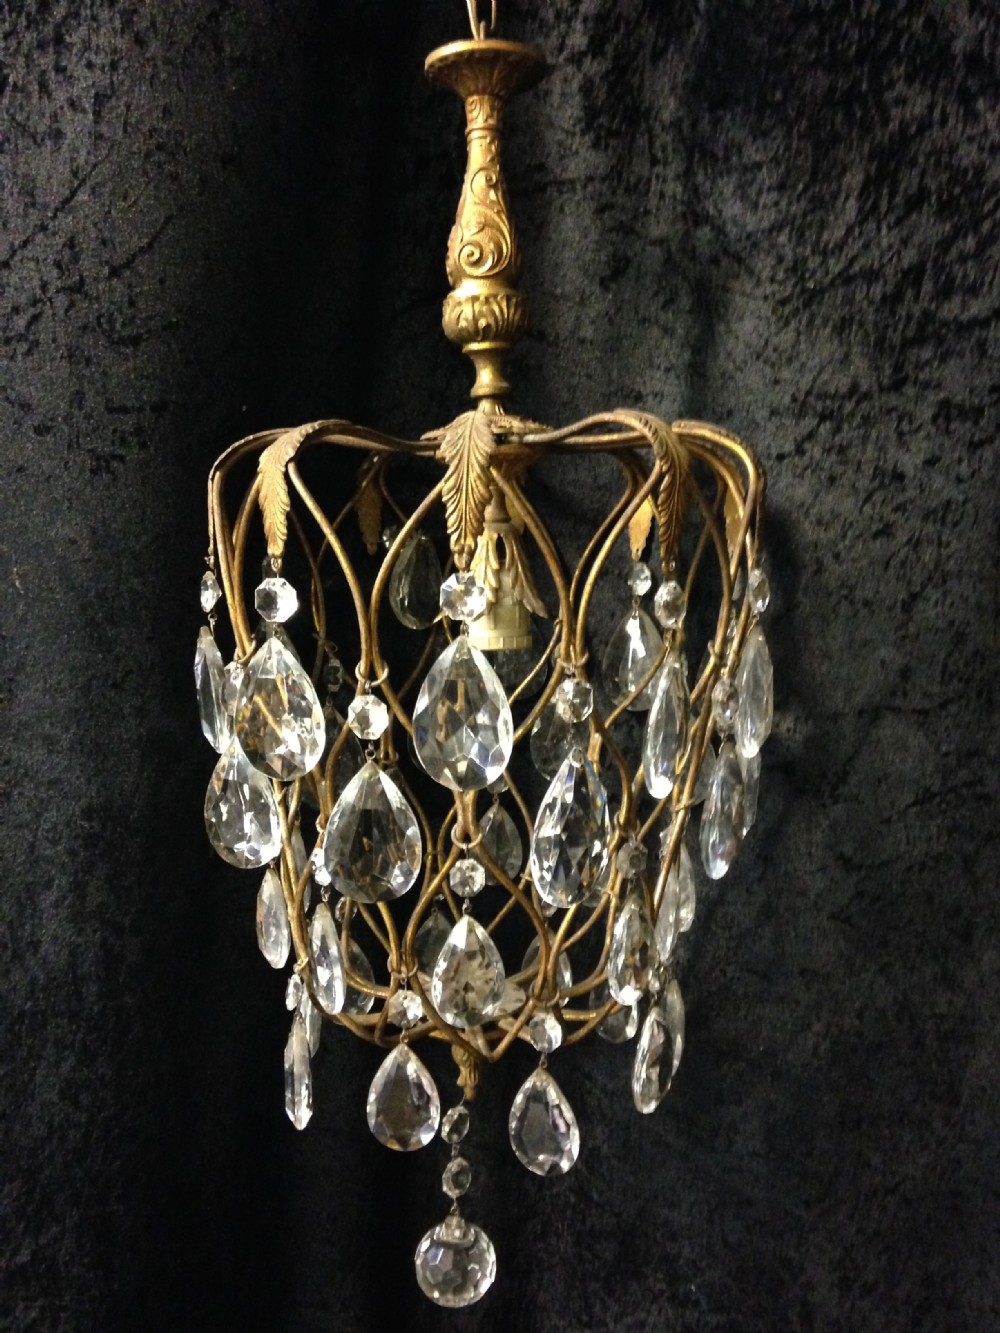 Small antique italian pineapple chandelier 327085 small antique italian pineapple chandelier aloadofball Gallery